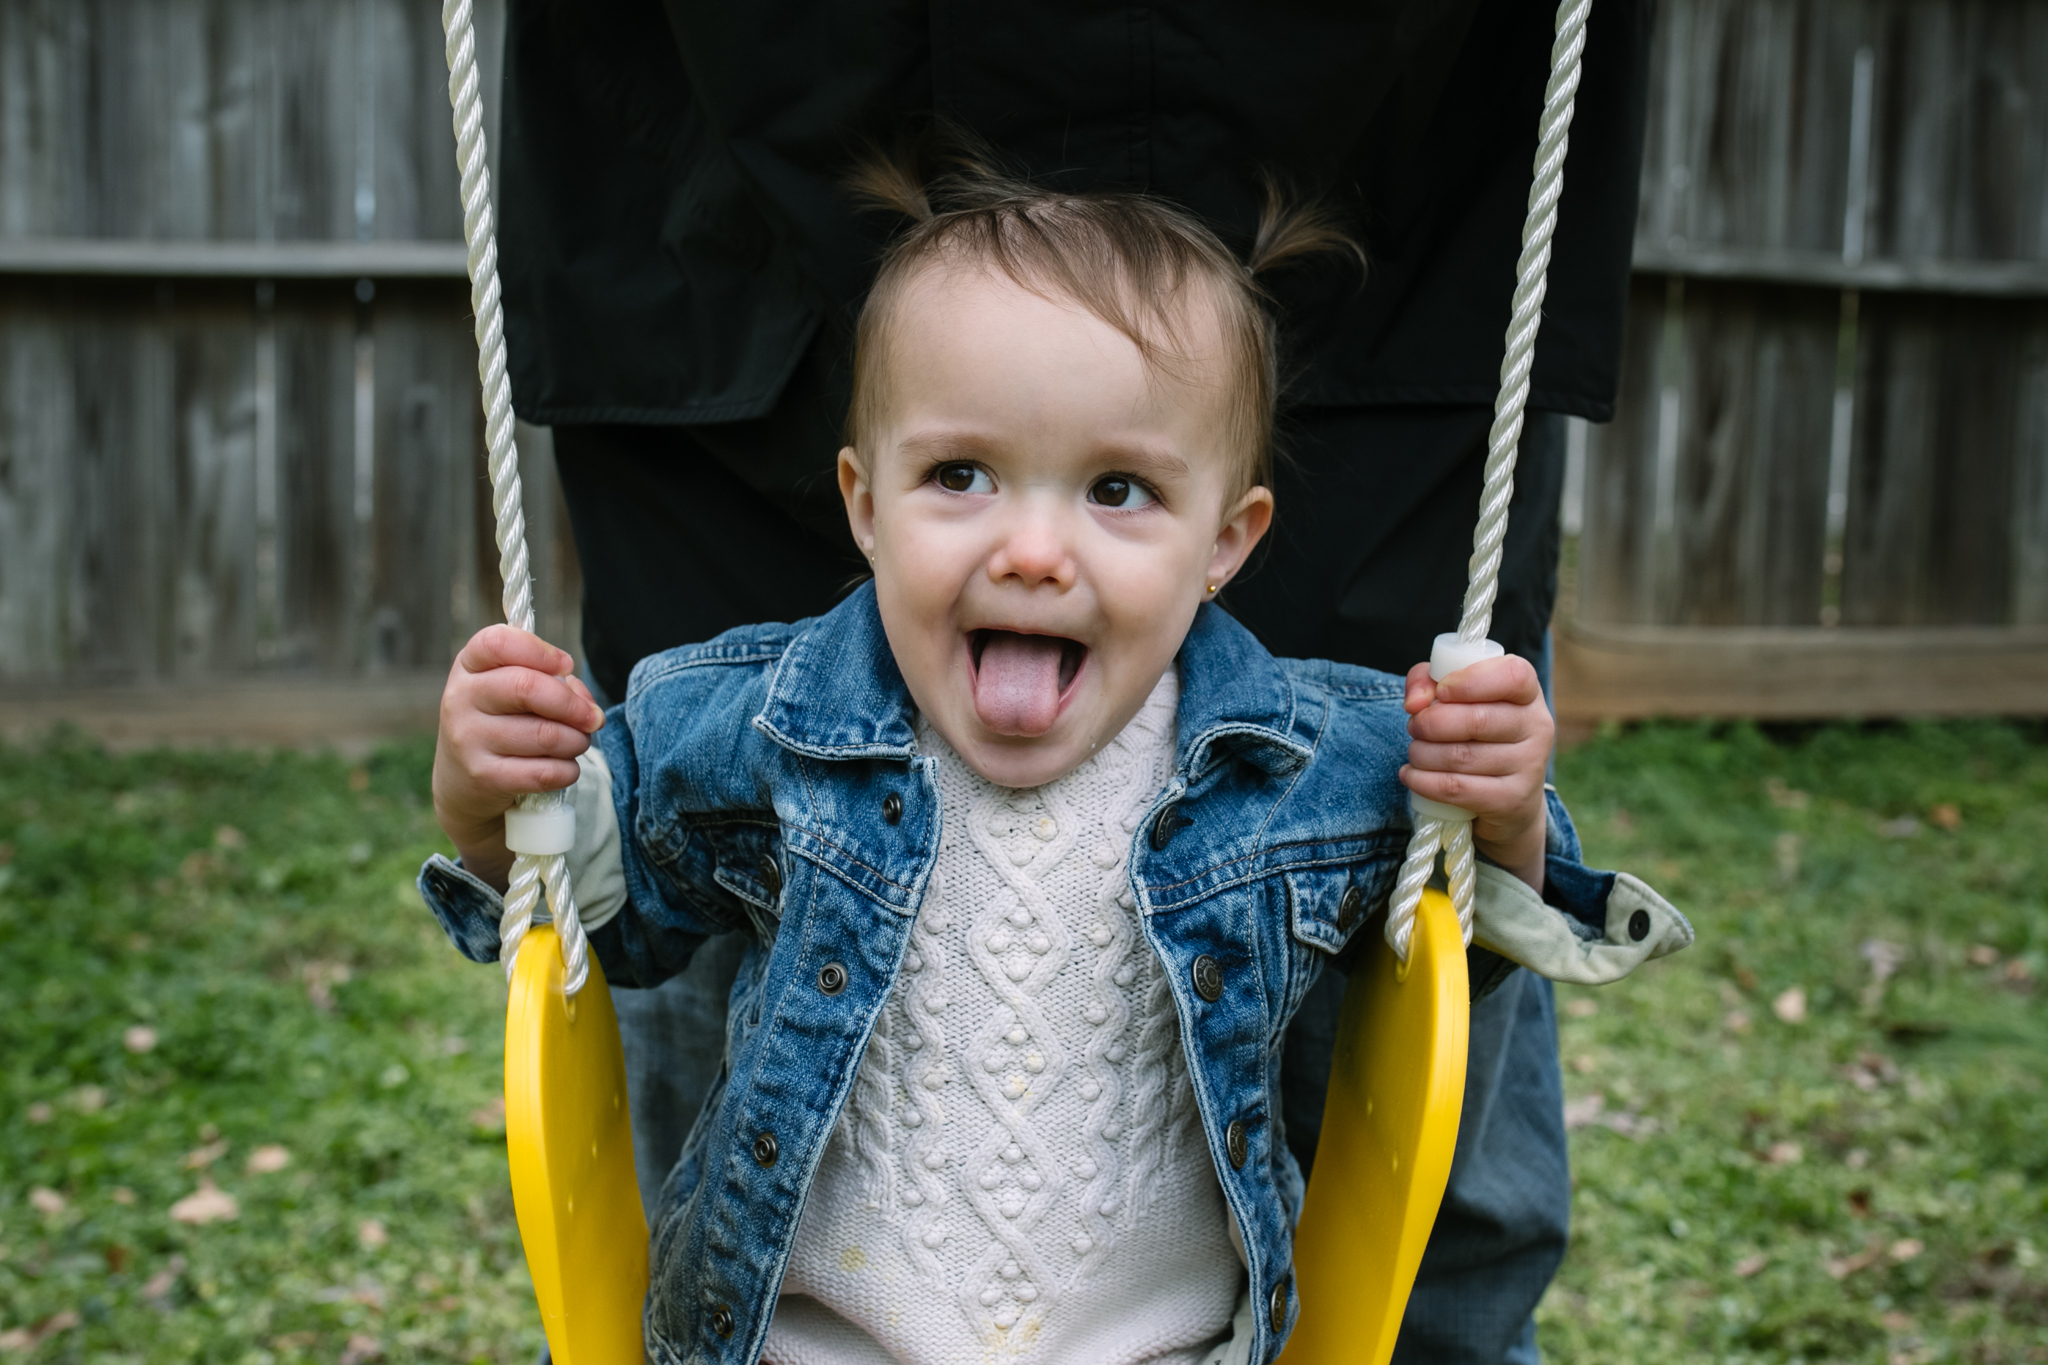 a toddler sits on a swing with her tongue out